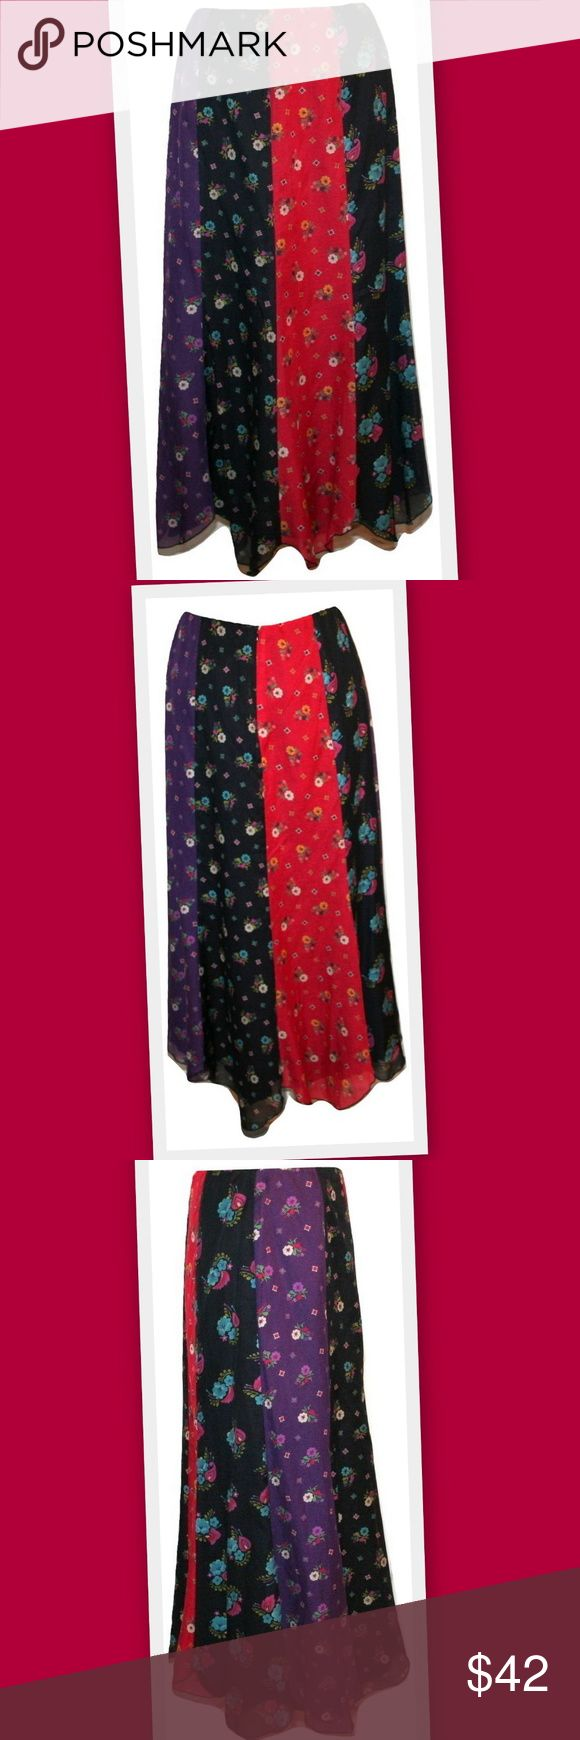 """Anna Sui Patchwork Paneled Maxi Skirt Beautiful patchwork skirt by designer Anna Sui. Contrasting vertical floral print panels. Scalloped hemline. Back zipper. Cotton/ silk voile fabric. Lined. Hits approximately above the ankles, depending on your height.  Made in USA   68% cotton 32% silk   Marked size 4 Waist 28"""" Hips 38"""" Length 34 1/2"""" Anna Sui Skirts Maxi"""